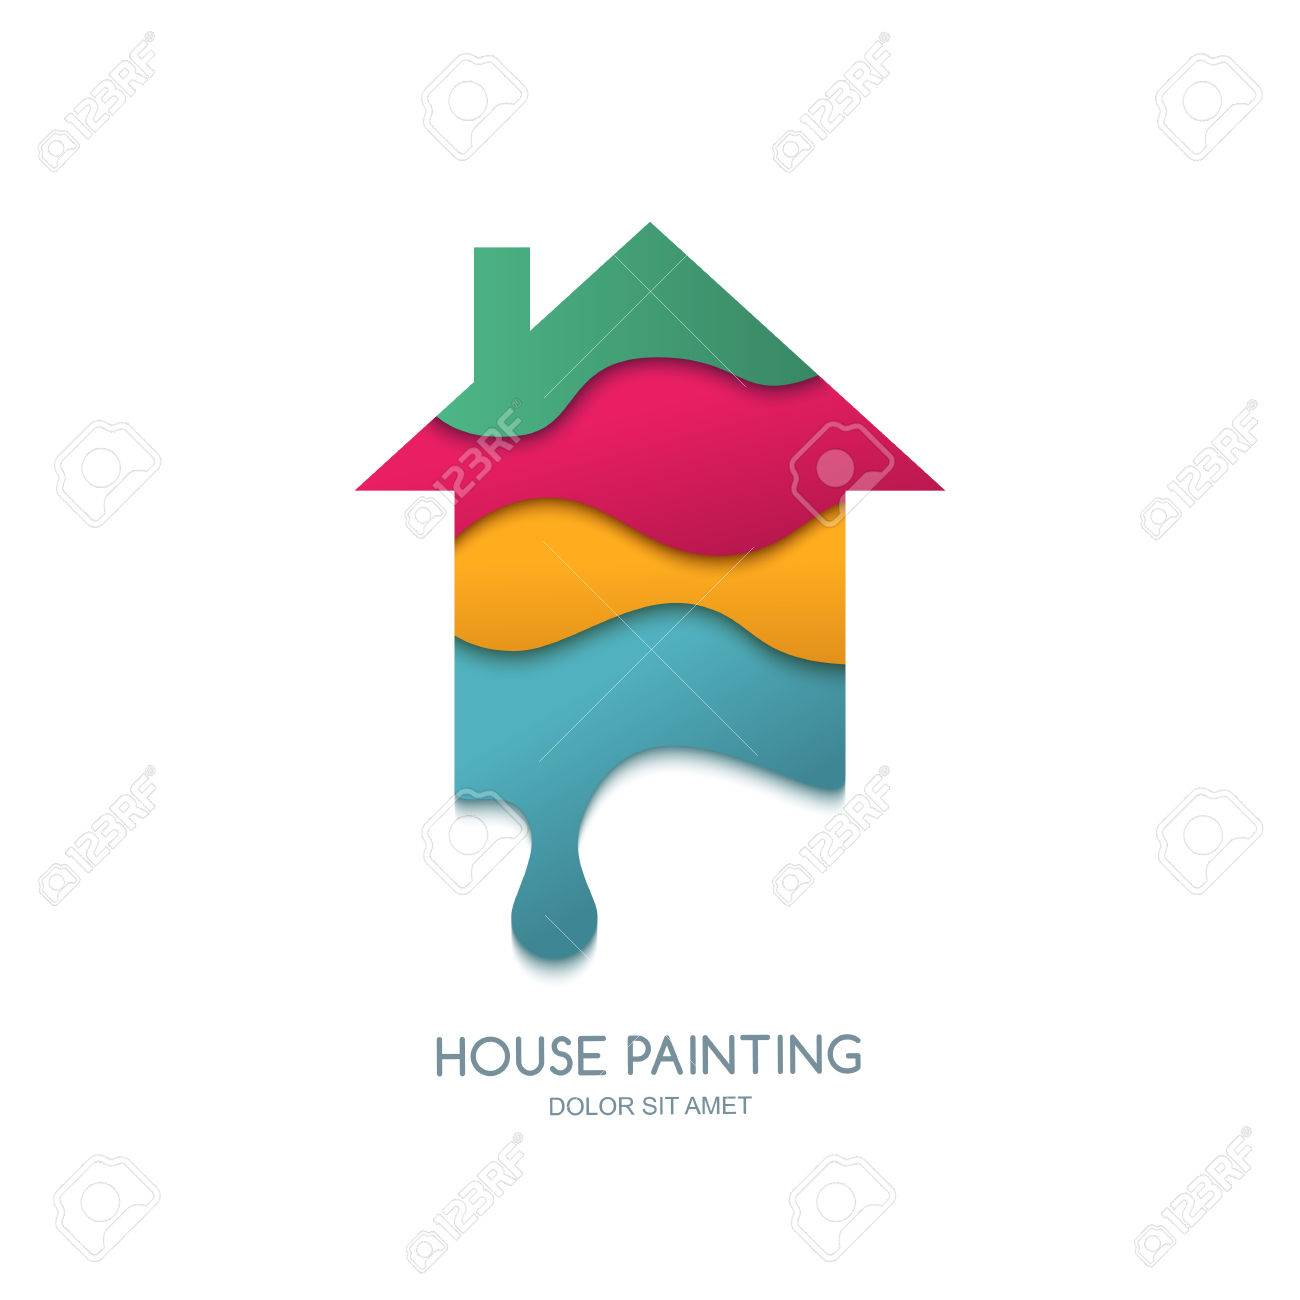 House Painting Service Decor And Repair Vector Logo Design